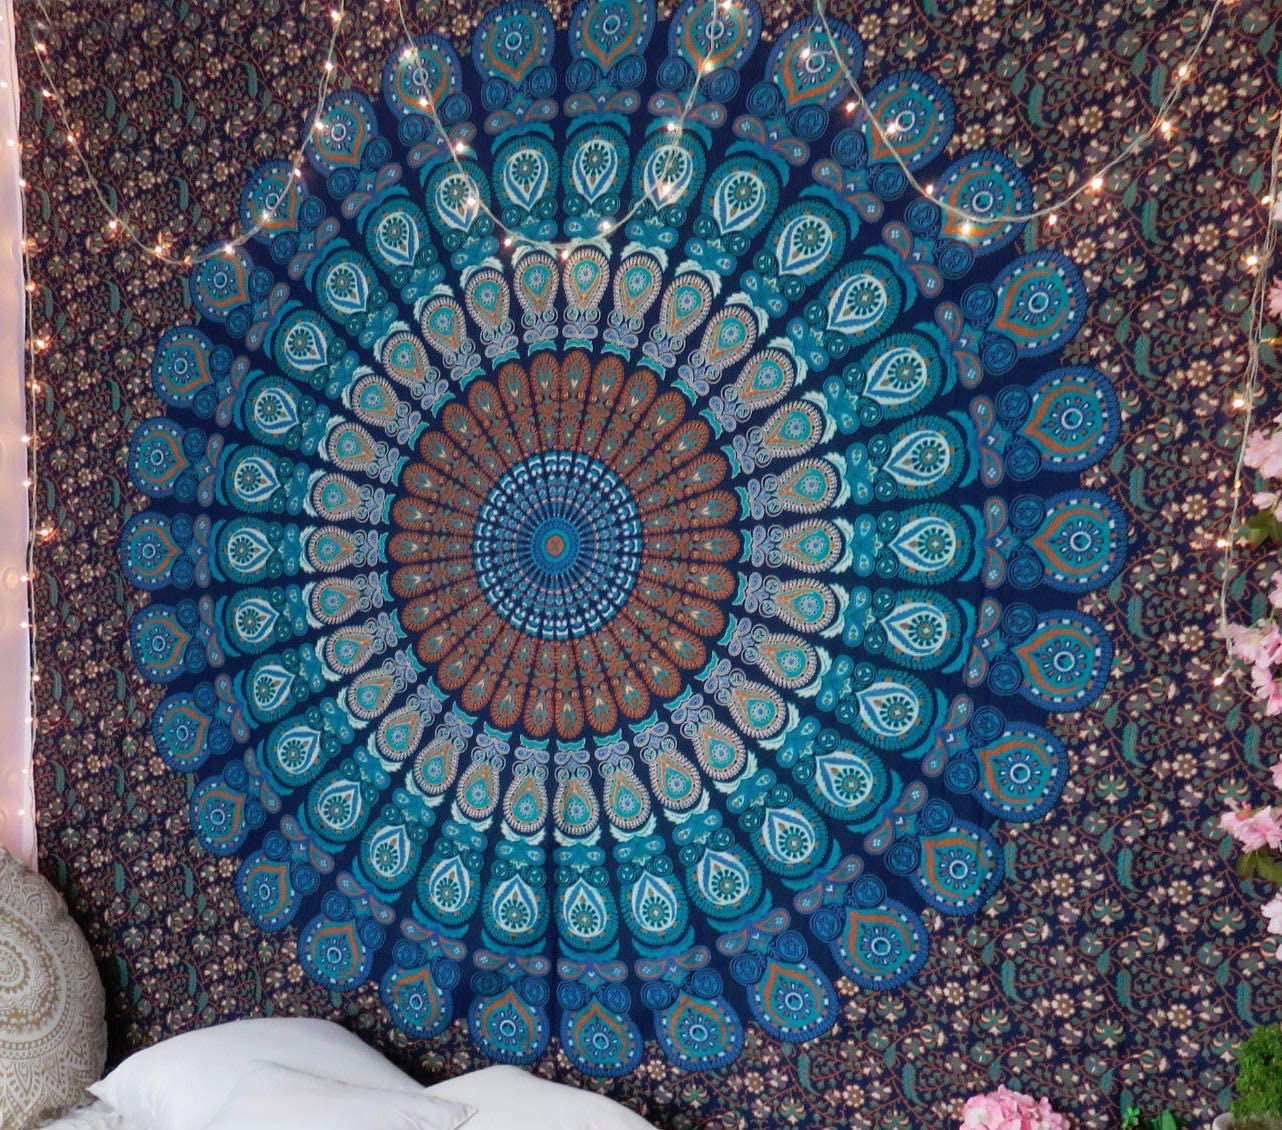 Indian Queen Size Mandala Tapestry Hippie Wall Hanging Bohemian Bedspread Throw